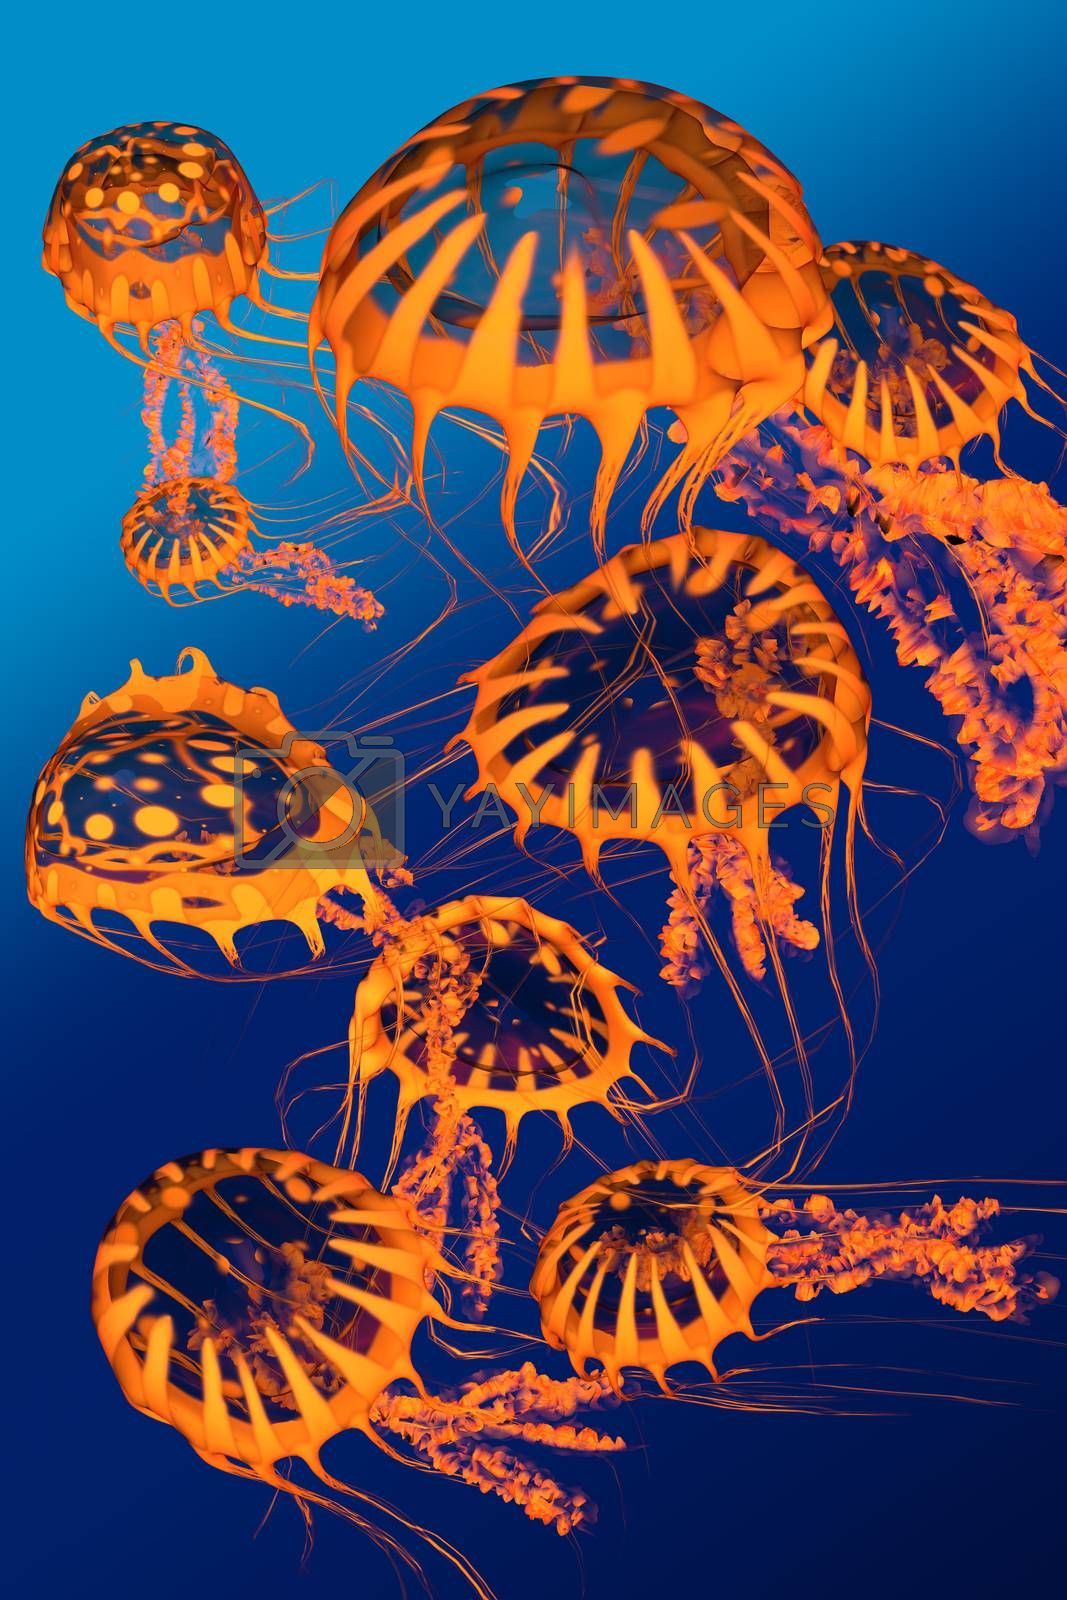 A group of golden jellyfish dance around each other in blue ocean surface waters.